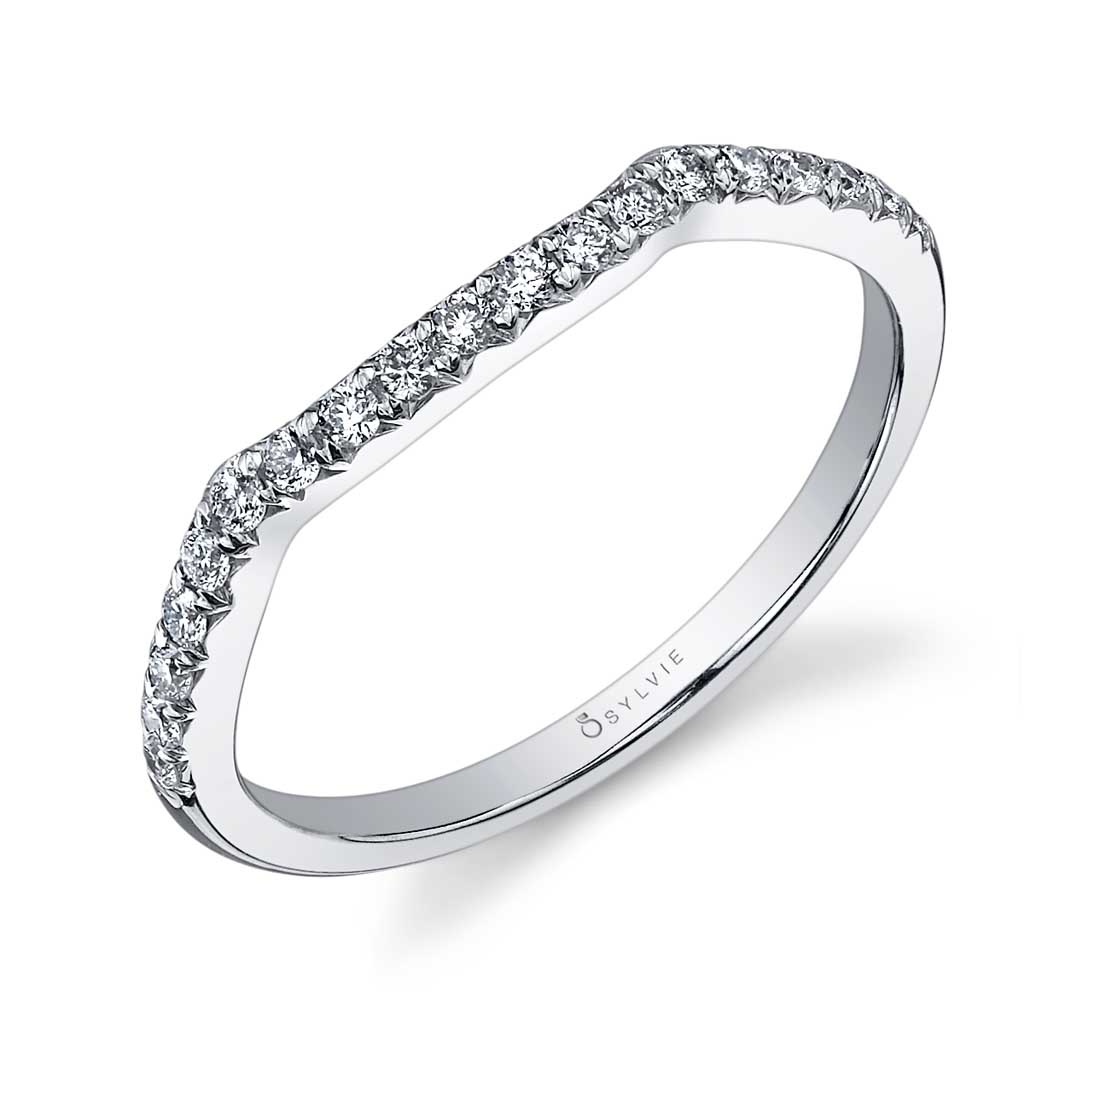 Profile Image of a Spiral Engagement Ring with Halo